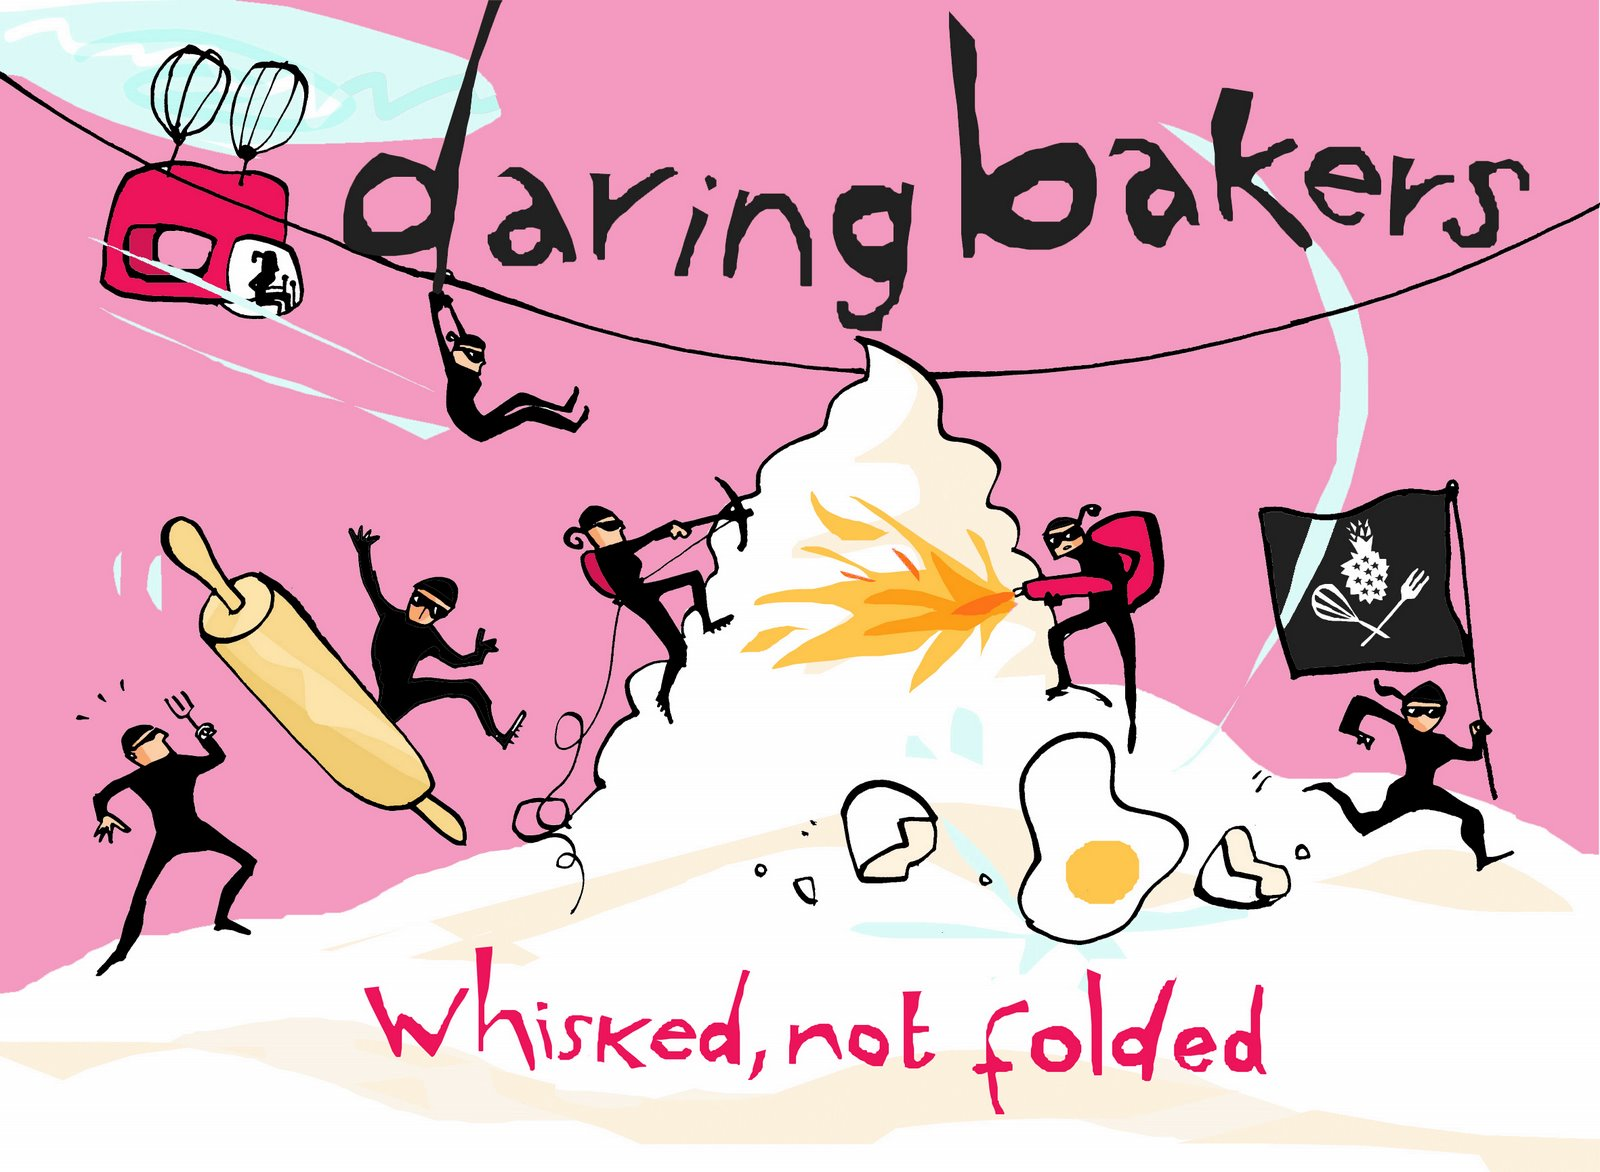 Daring Bakers logo, whisked not folded, 2007